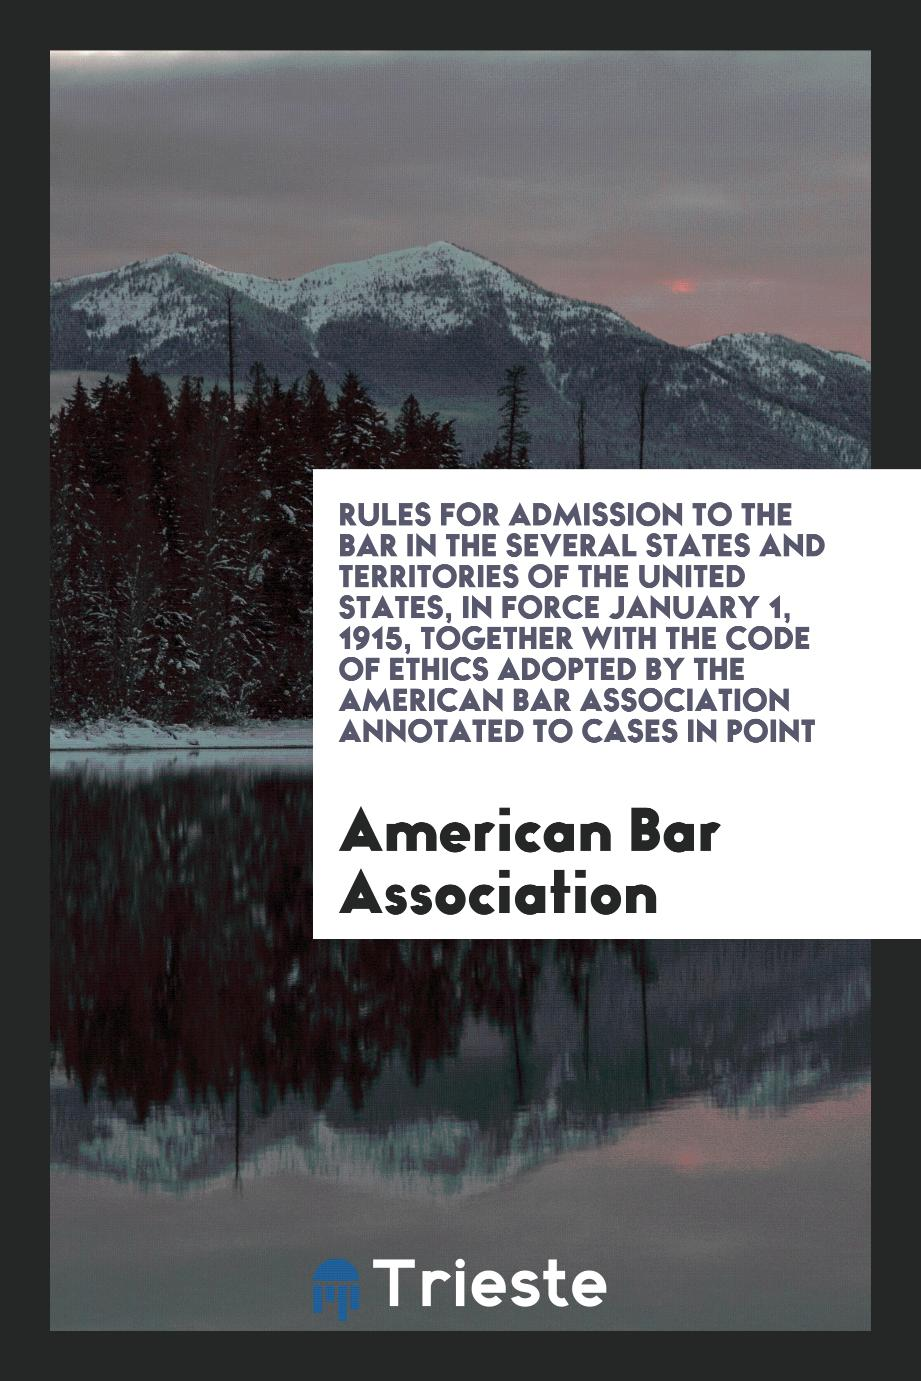 Rules for Admission to the Bar in the Several States and Territories of the United States, in Force January 1, 1915, Together with the Code of Ethics Adopted by the American Bar Association Annotated to Cases in Point